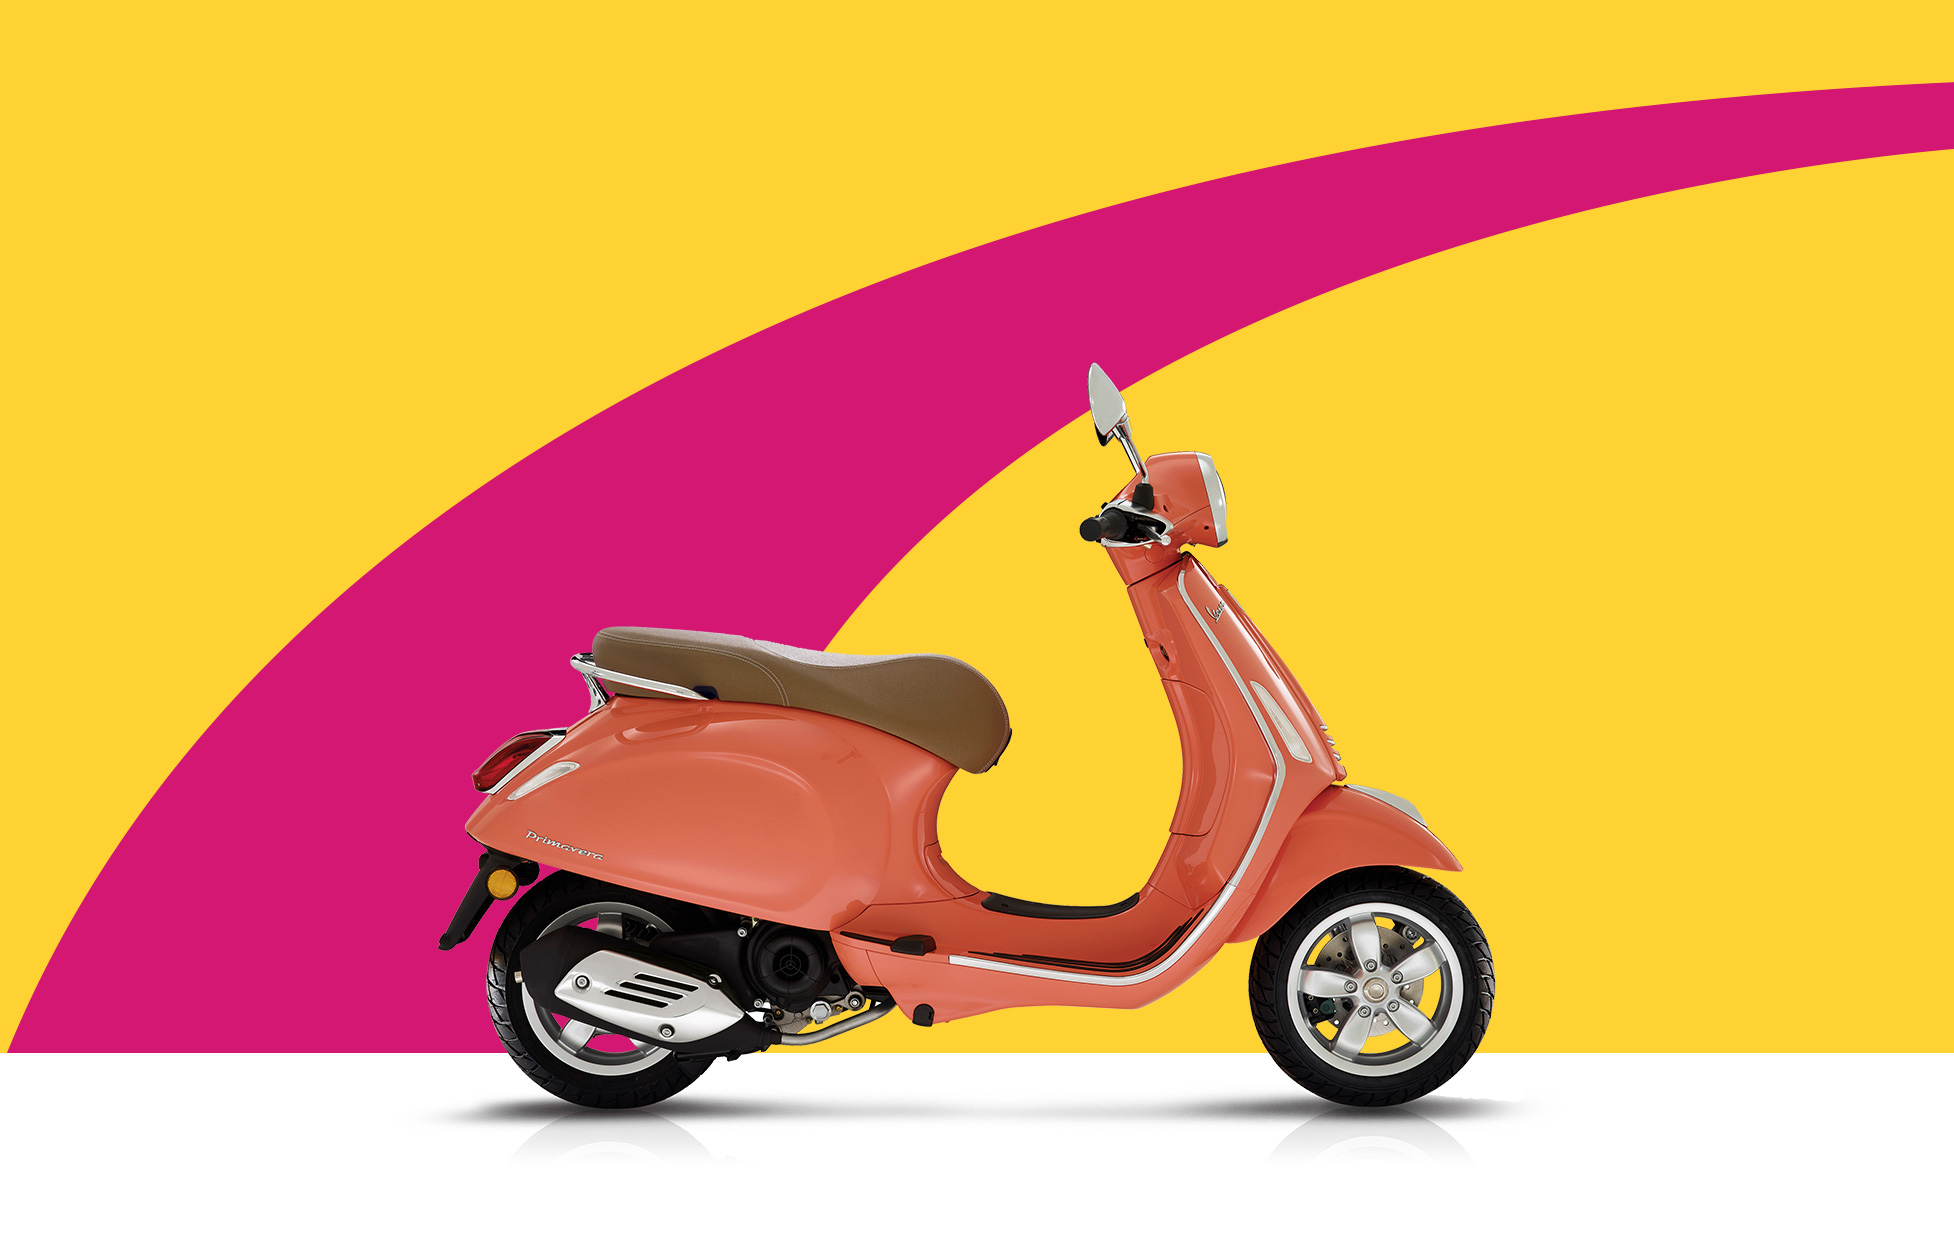 Vespa Hit The Big Time With Their Latest Creation – Hello Hollywood